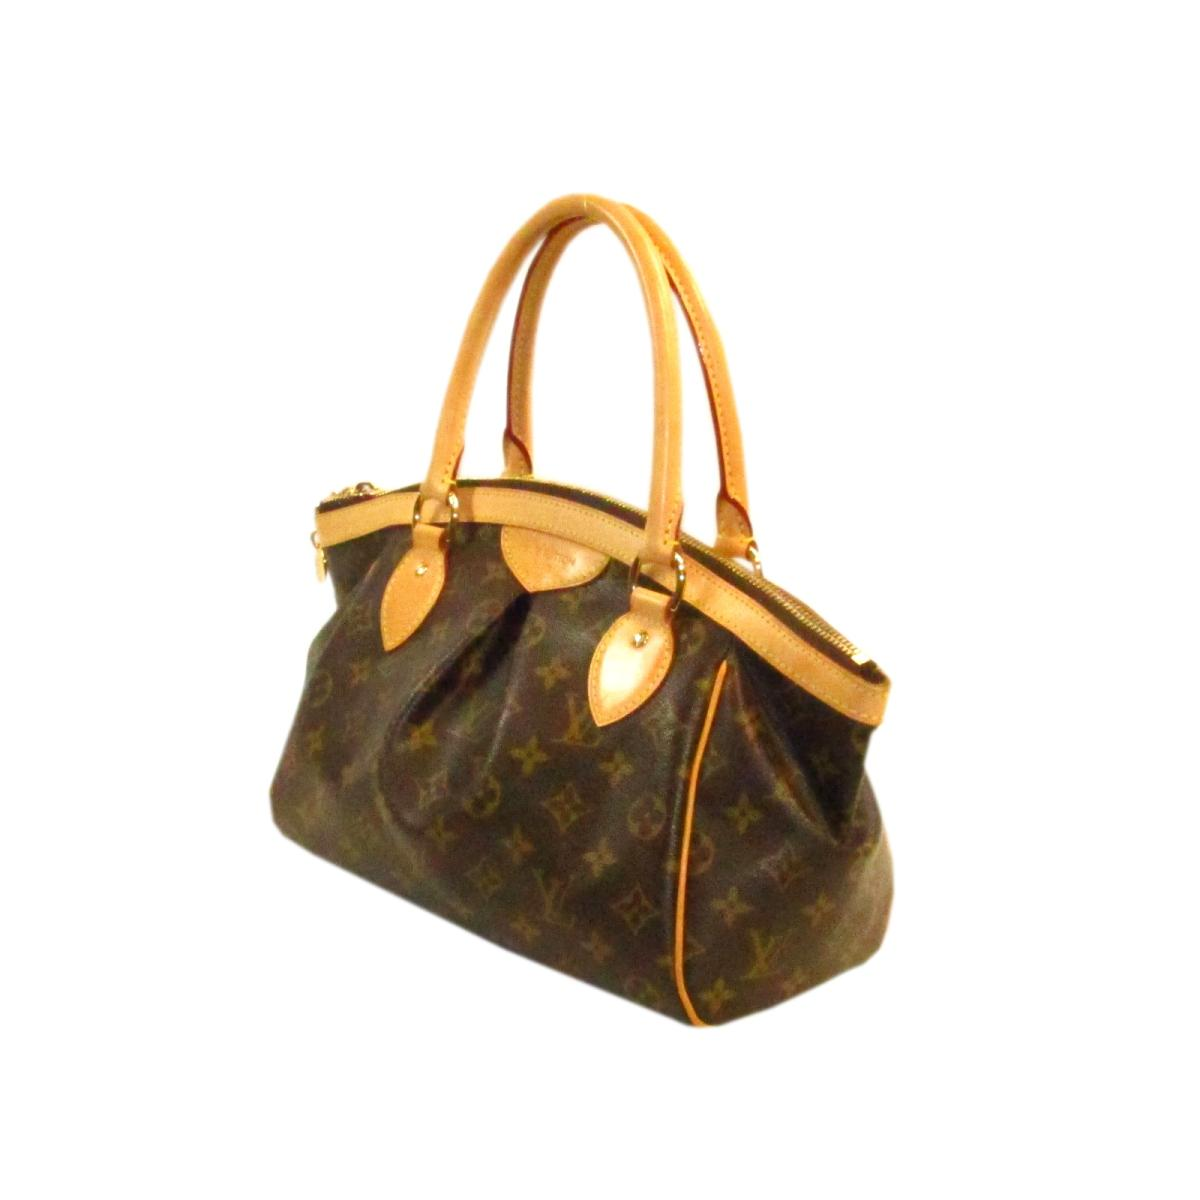 86652e58aae4 BRANDOFF  Auth LOUIS VUITTON Tivoli PM handbag M40143 Monogram Brown ...